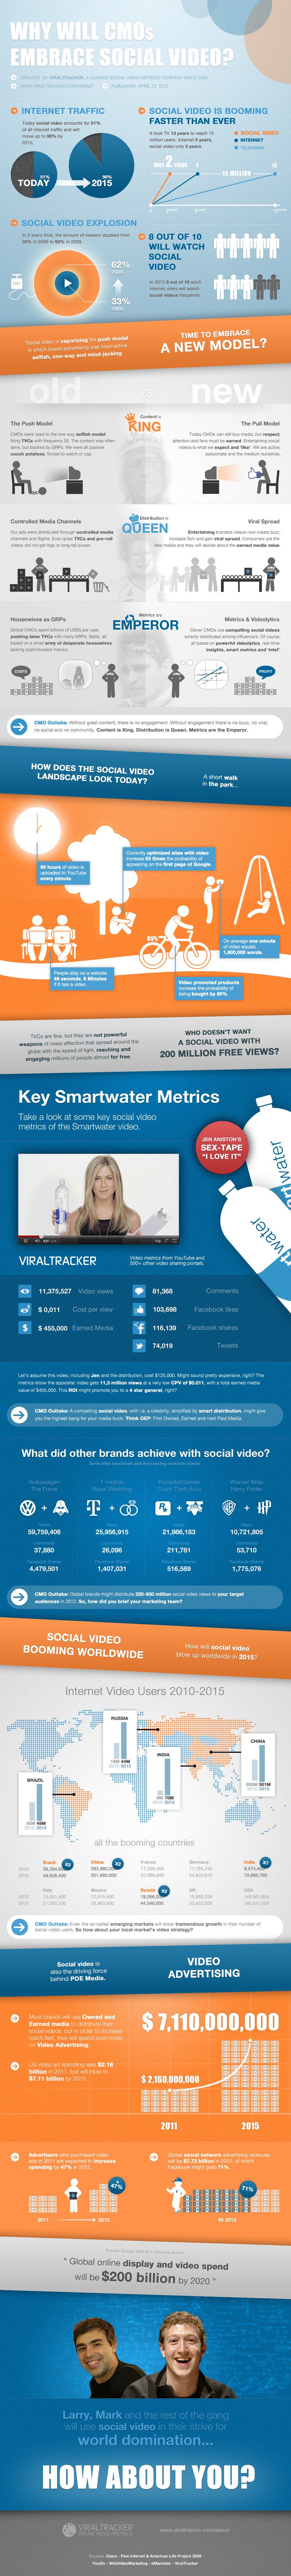 Social video is booming; it represents more than half of the internet traffic today. By 2015 social video is predicted to have 90% of the entire Inter